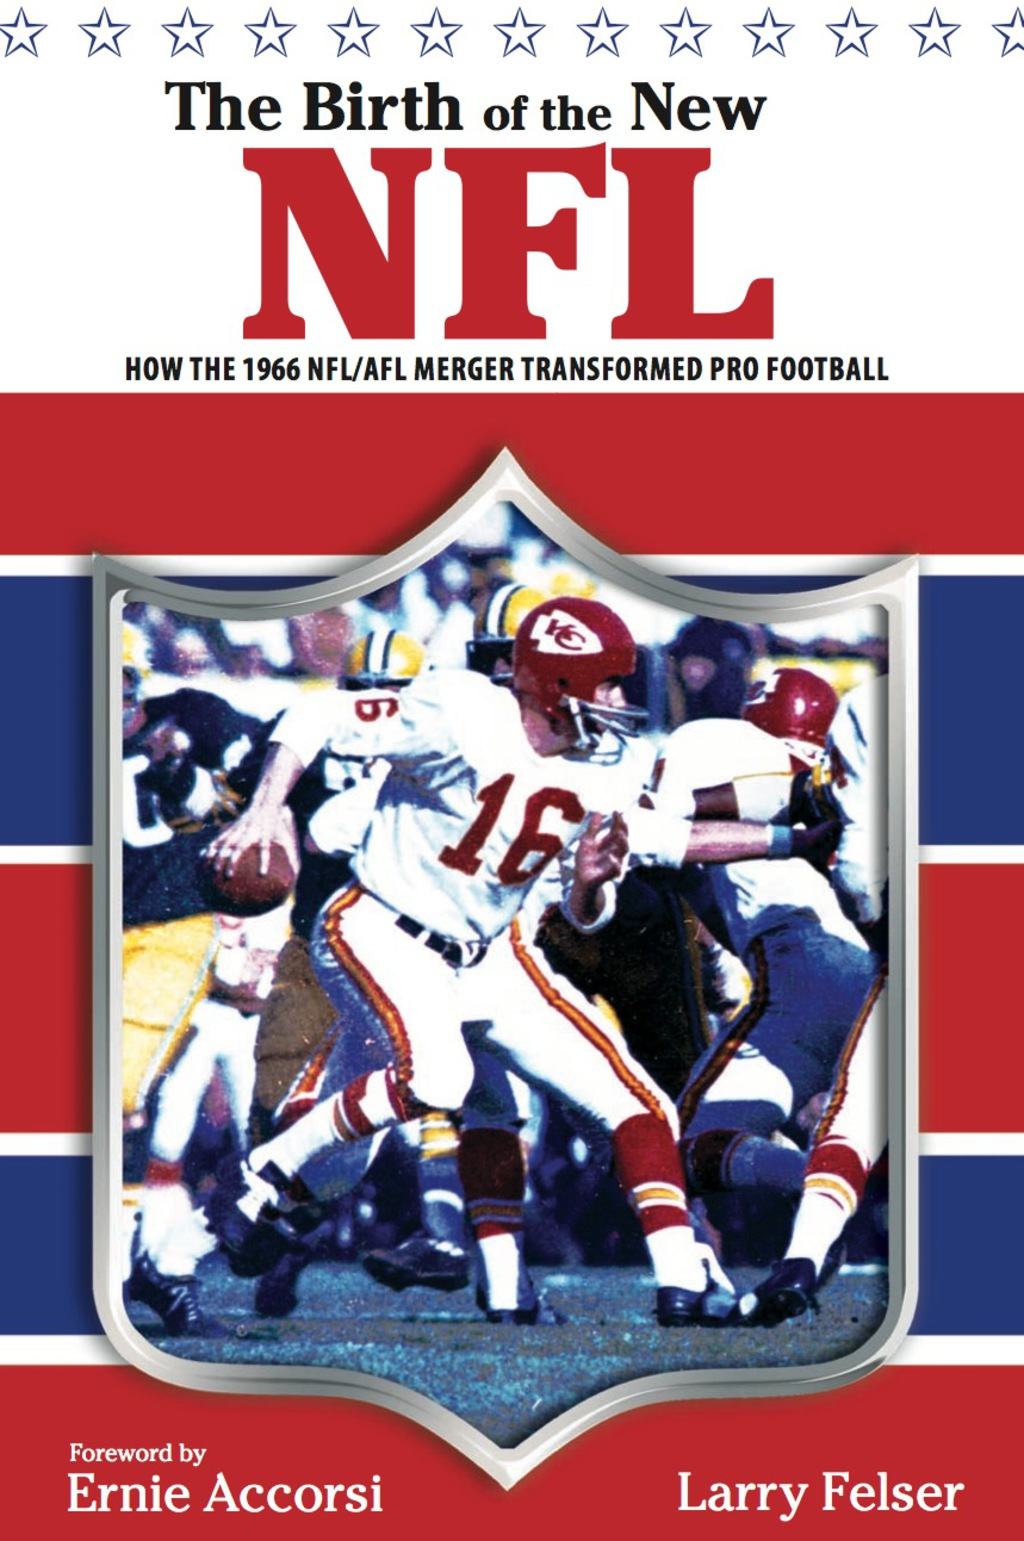 Birth of the New NFL: How the 1966 NFL/AFL Merger Transformed Pro Football (ebook) eBooks